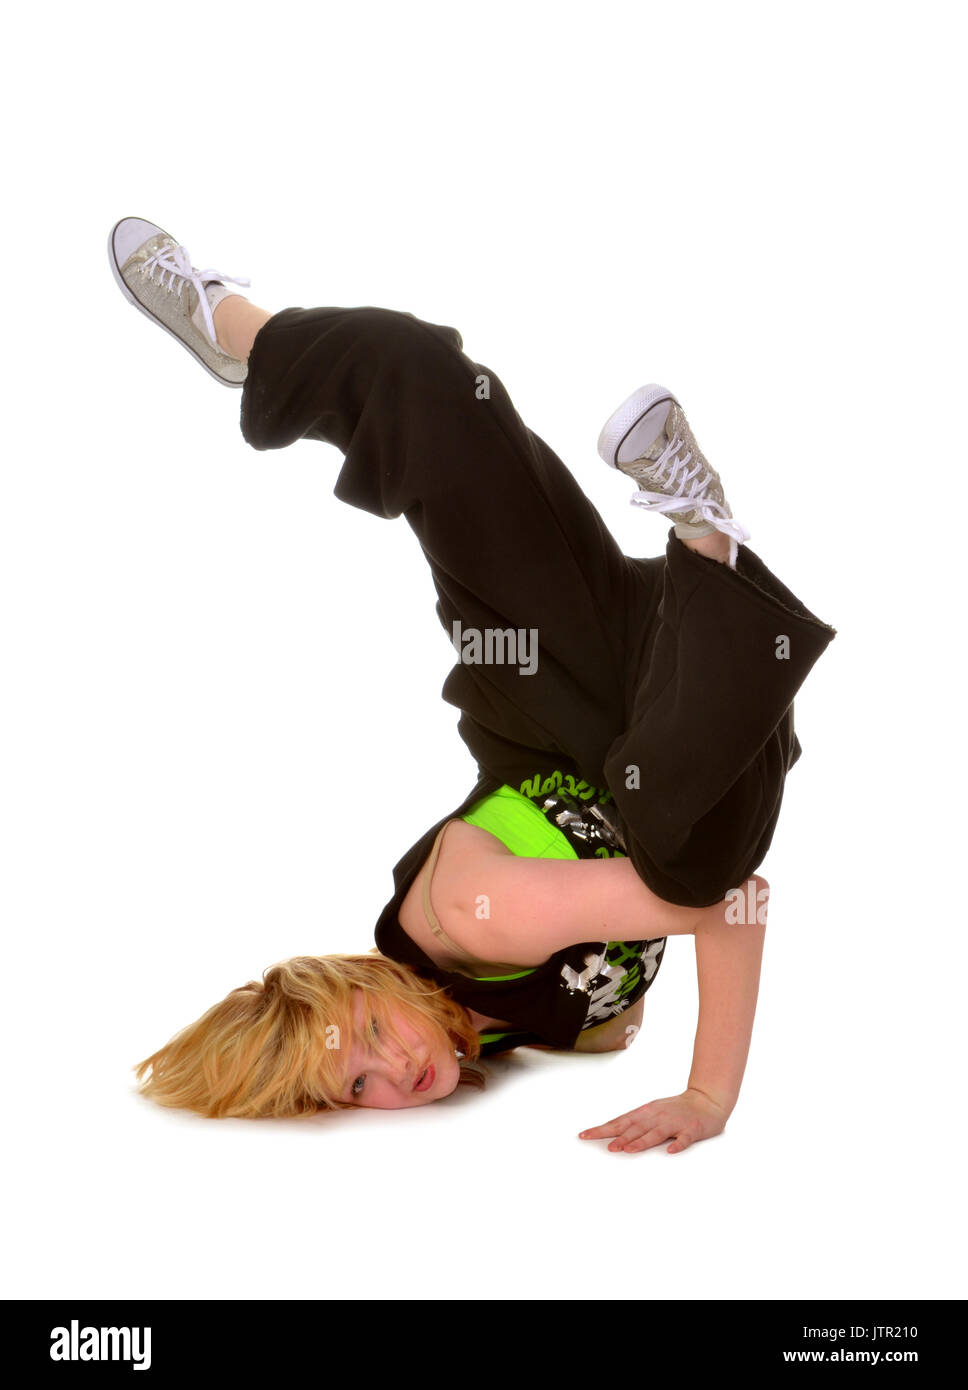 307b29492adc Hip Hop or Break Dancing Girl Performs Face Stand Stock Photo ...